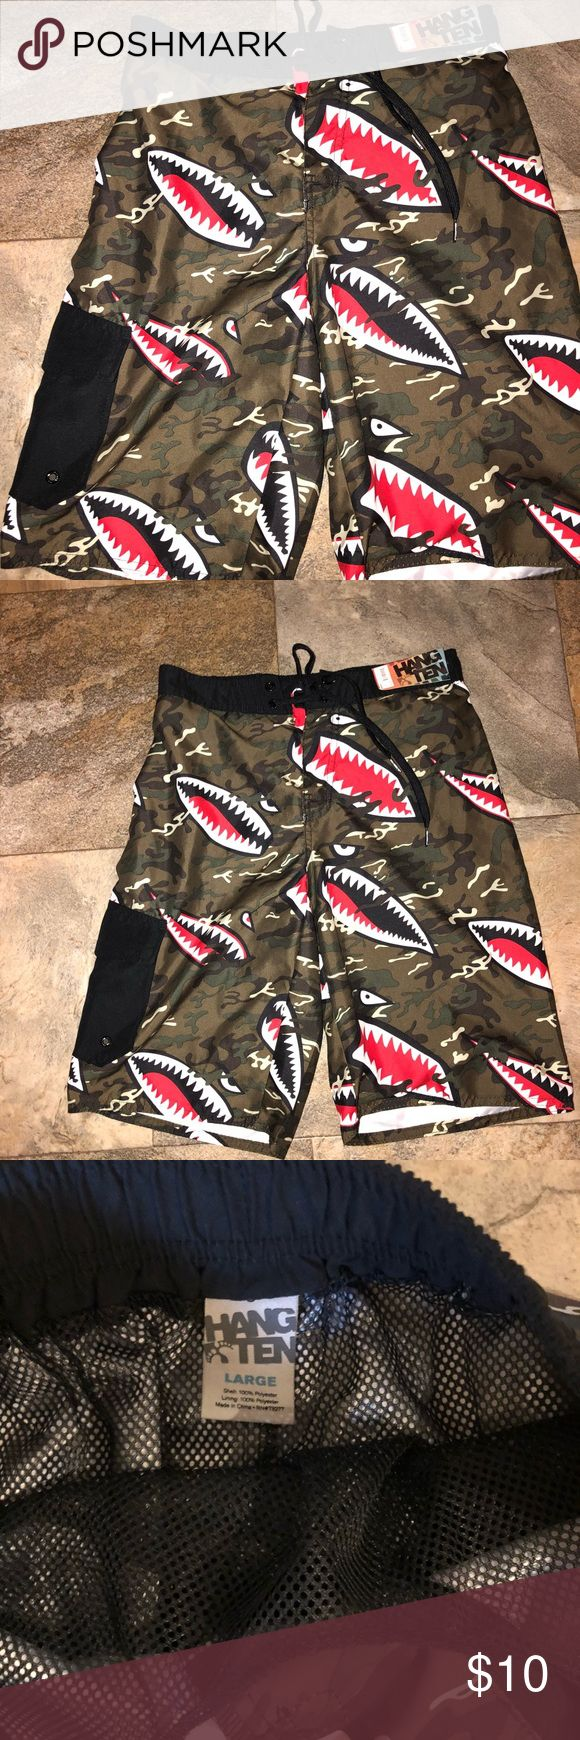 Boys shark swimsuit NWT size Large Boys shark swimsuit NWT size Large Hawke & Co Swim Swim Trunks